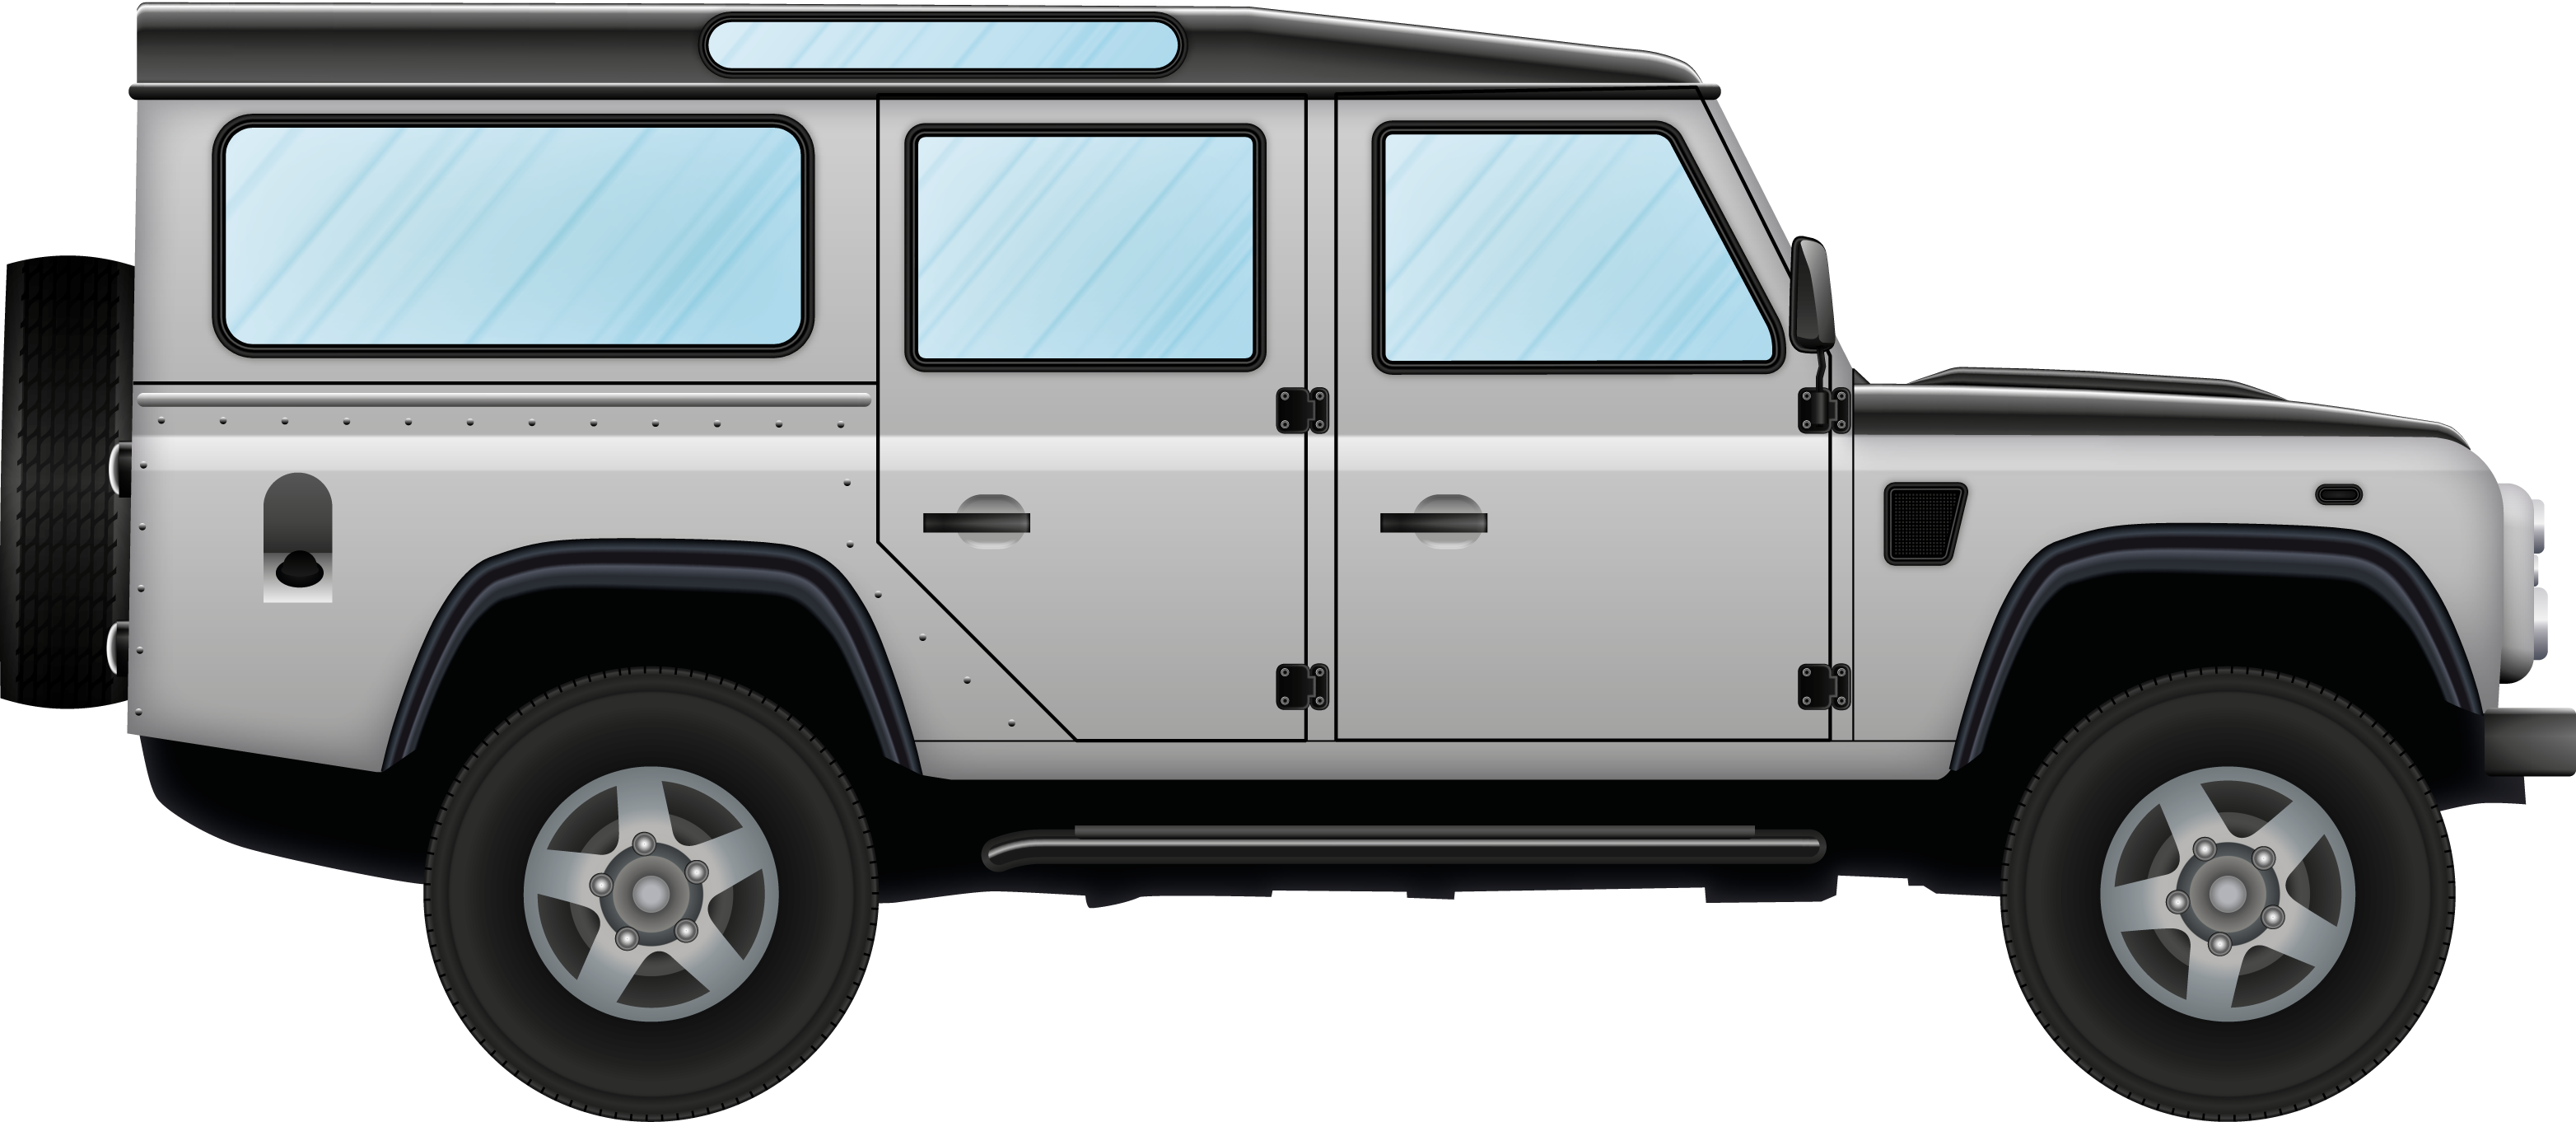 Land Rover Defender PNG